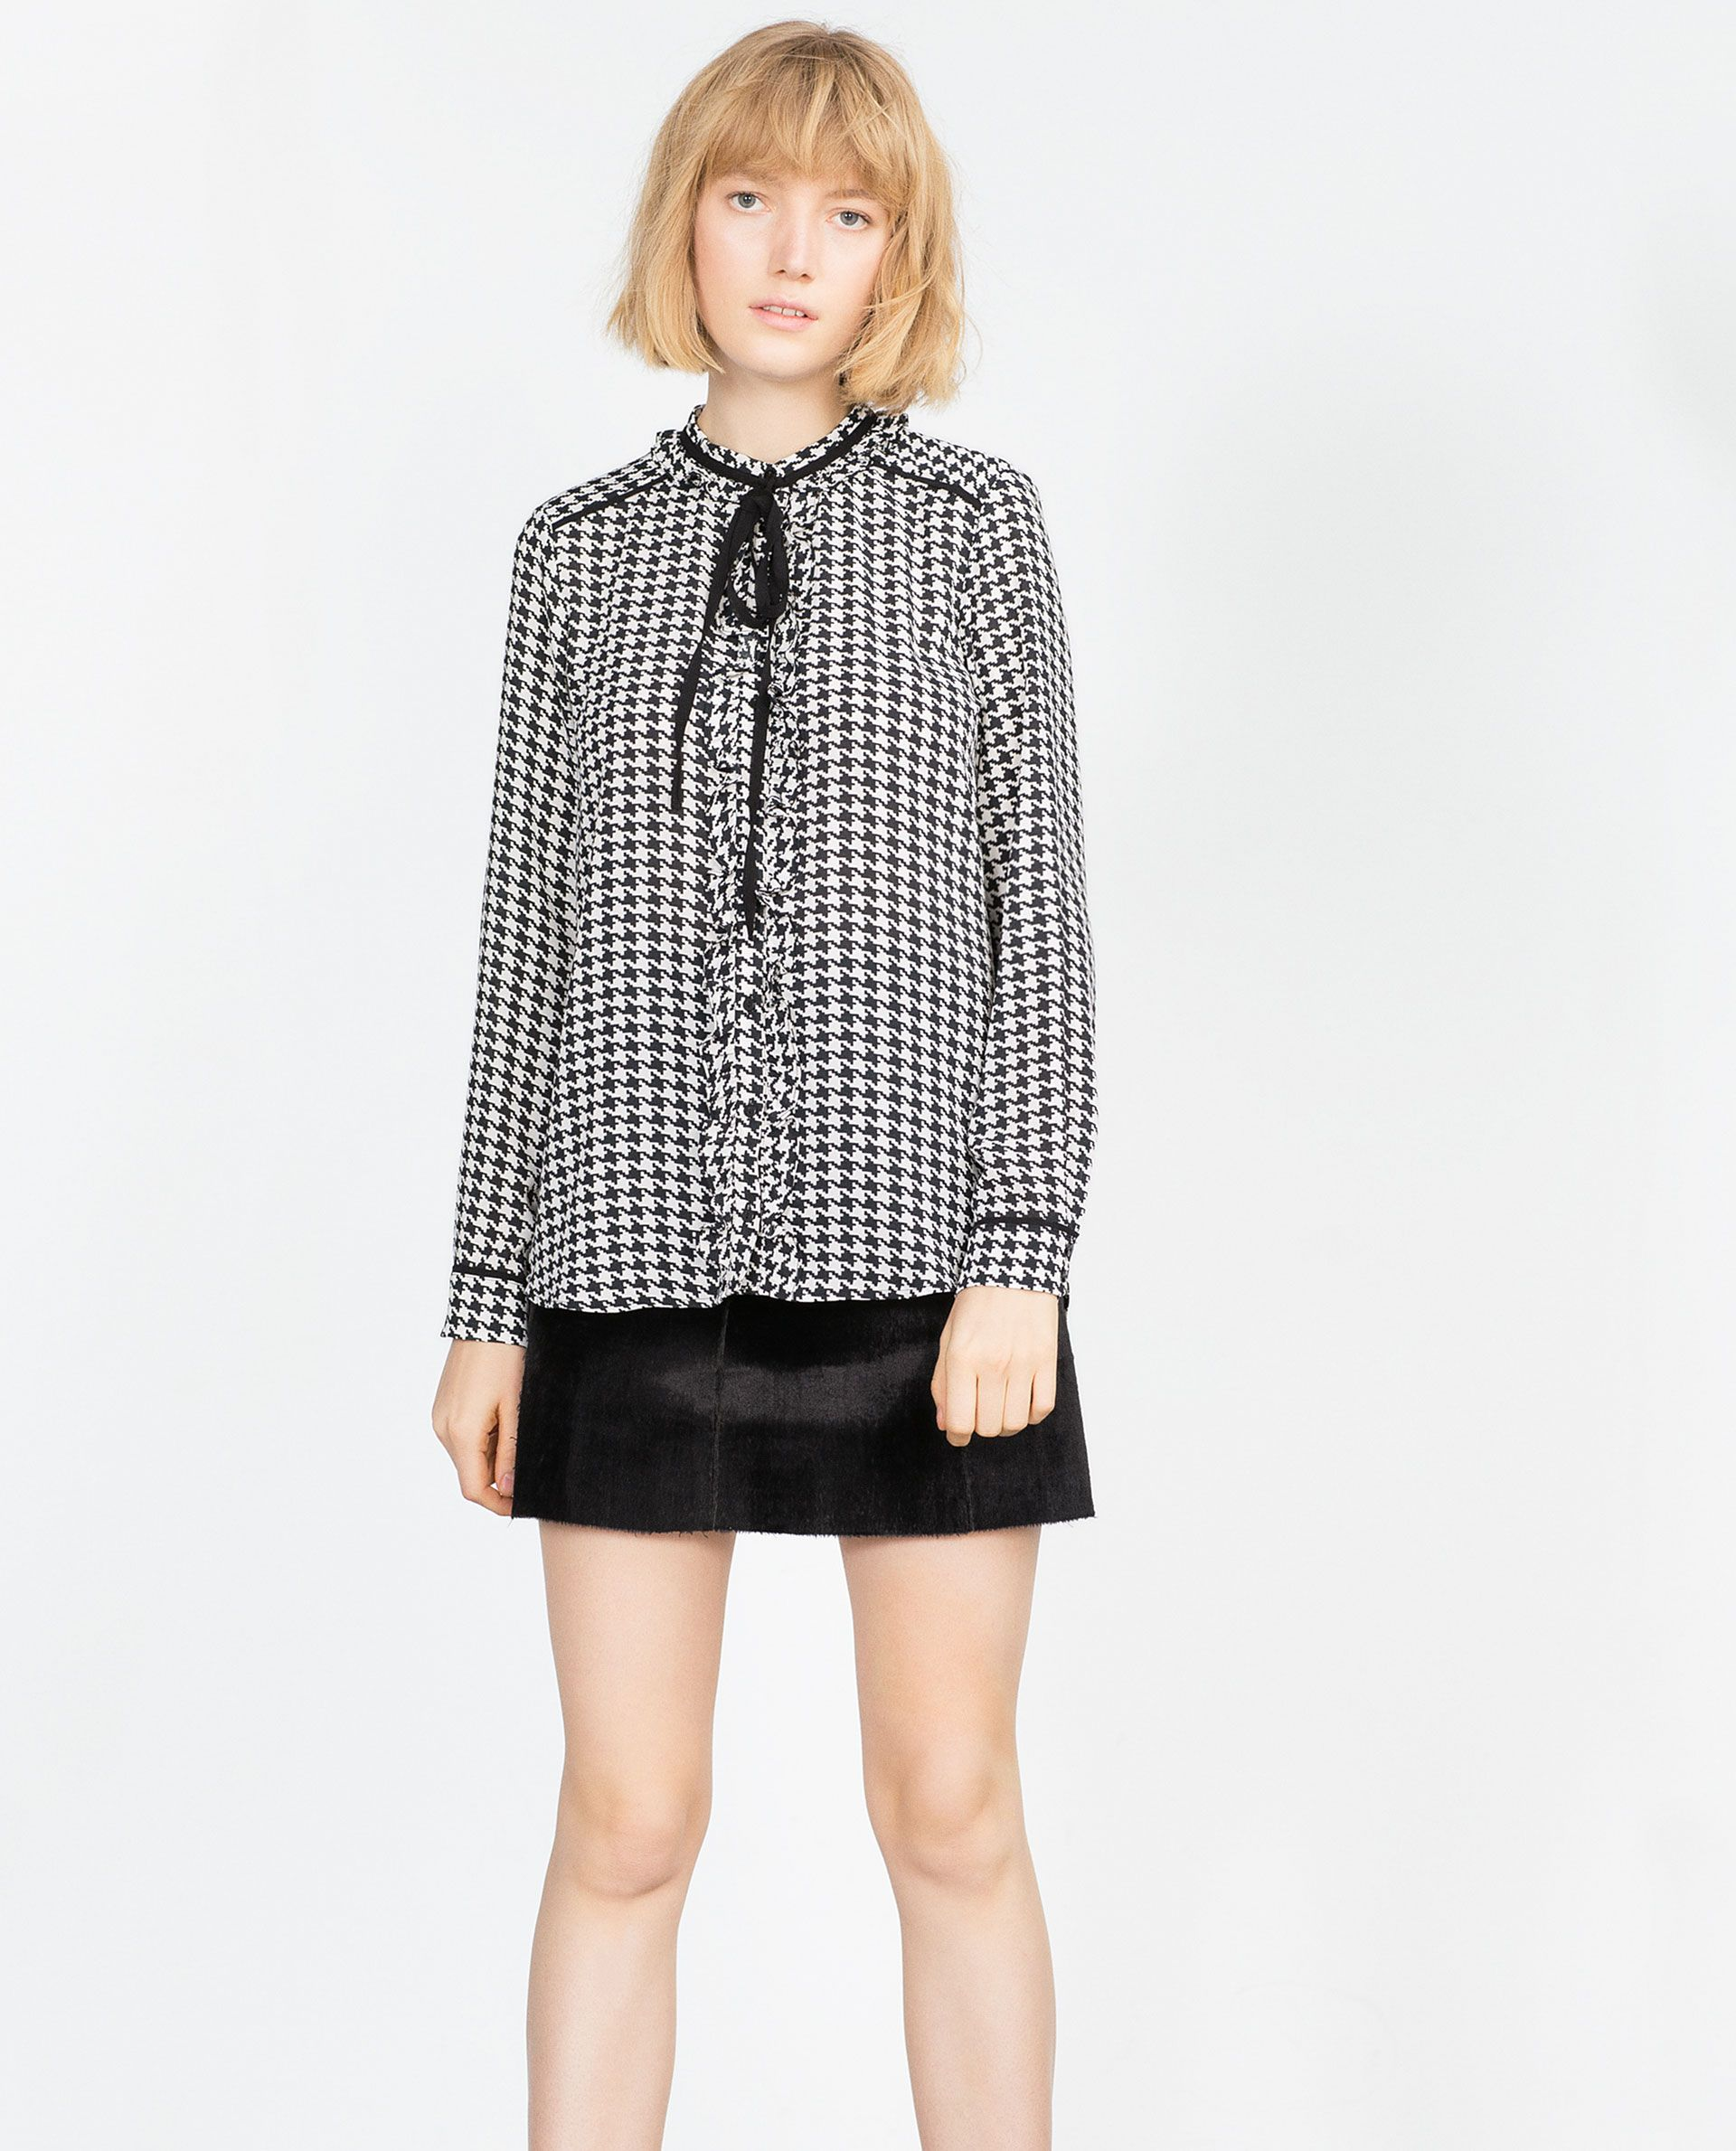 PRINTED BLOUSE WITH A JABOT FRILL | ZARA saved by #ShoppingIS